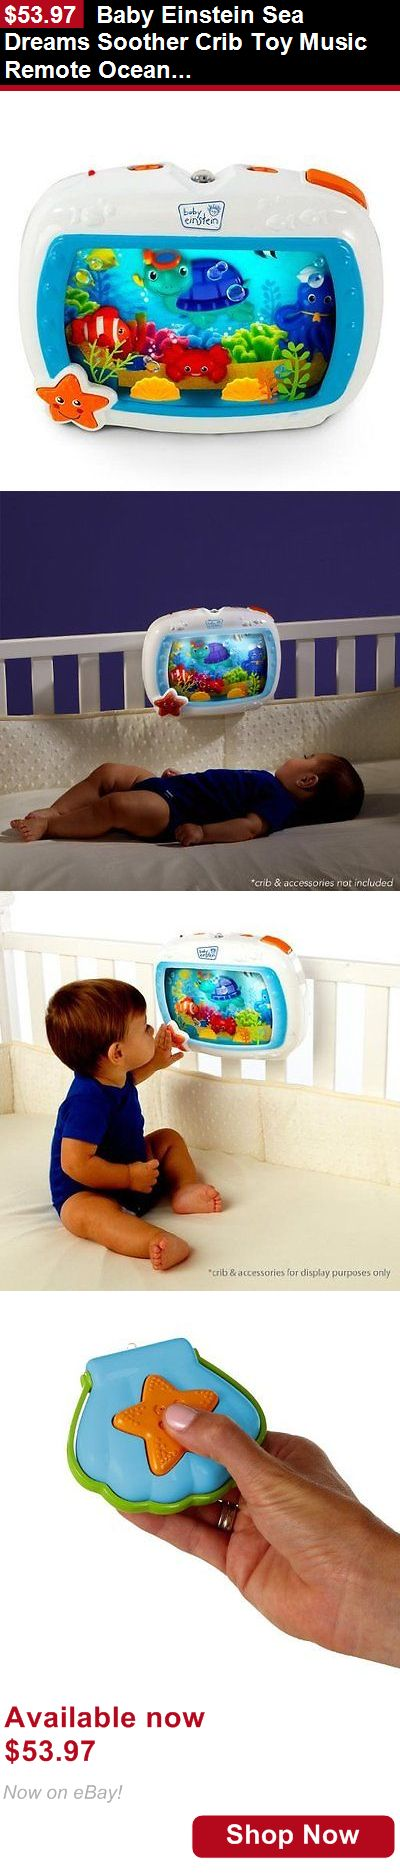 Crib Toys: Baby Einstein Sea Dreams Soother Crib Toy Music Remote Ocean Aquarium Lights BUY IT NOW ONLY: $53.97